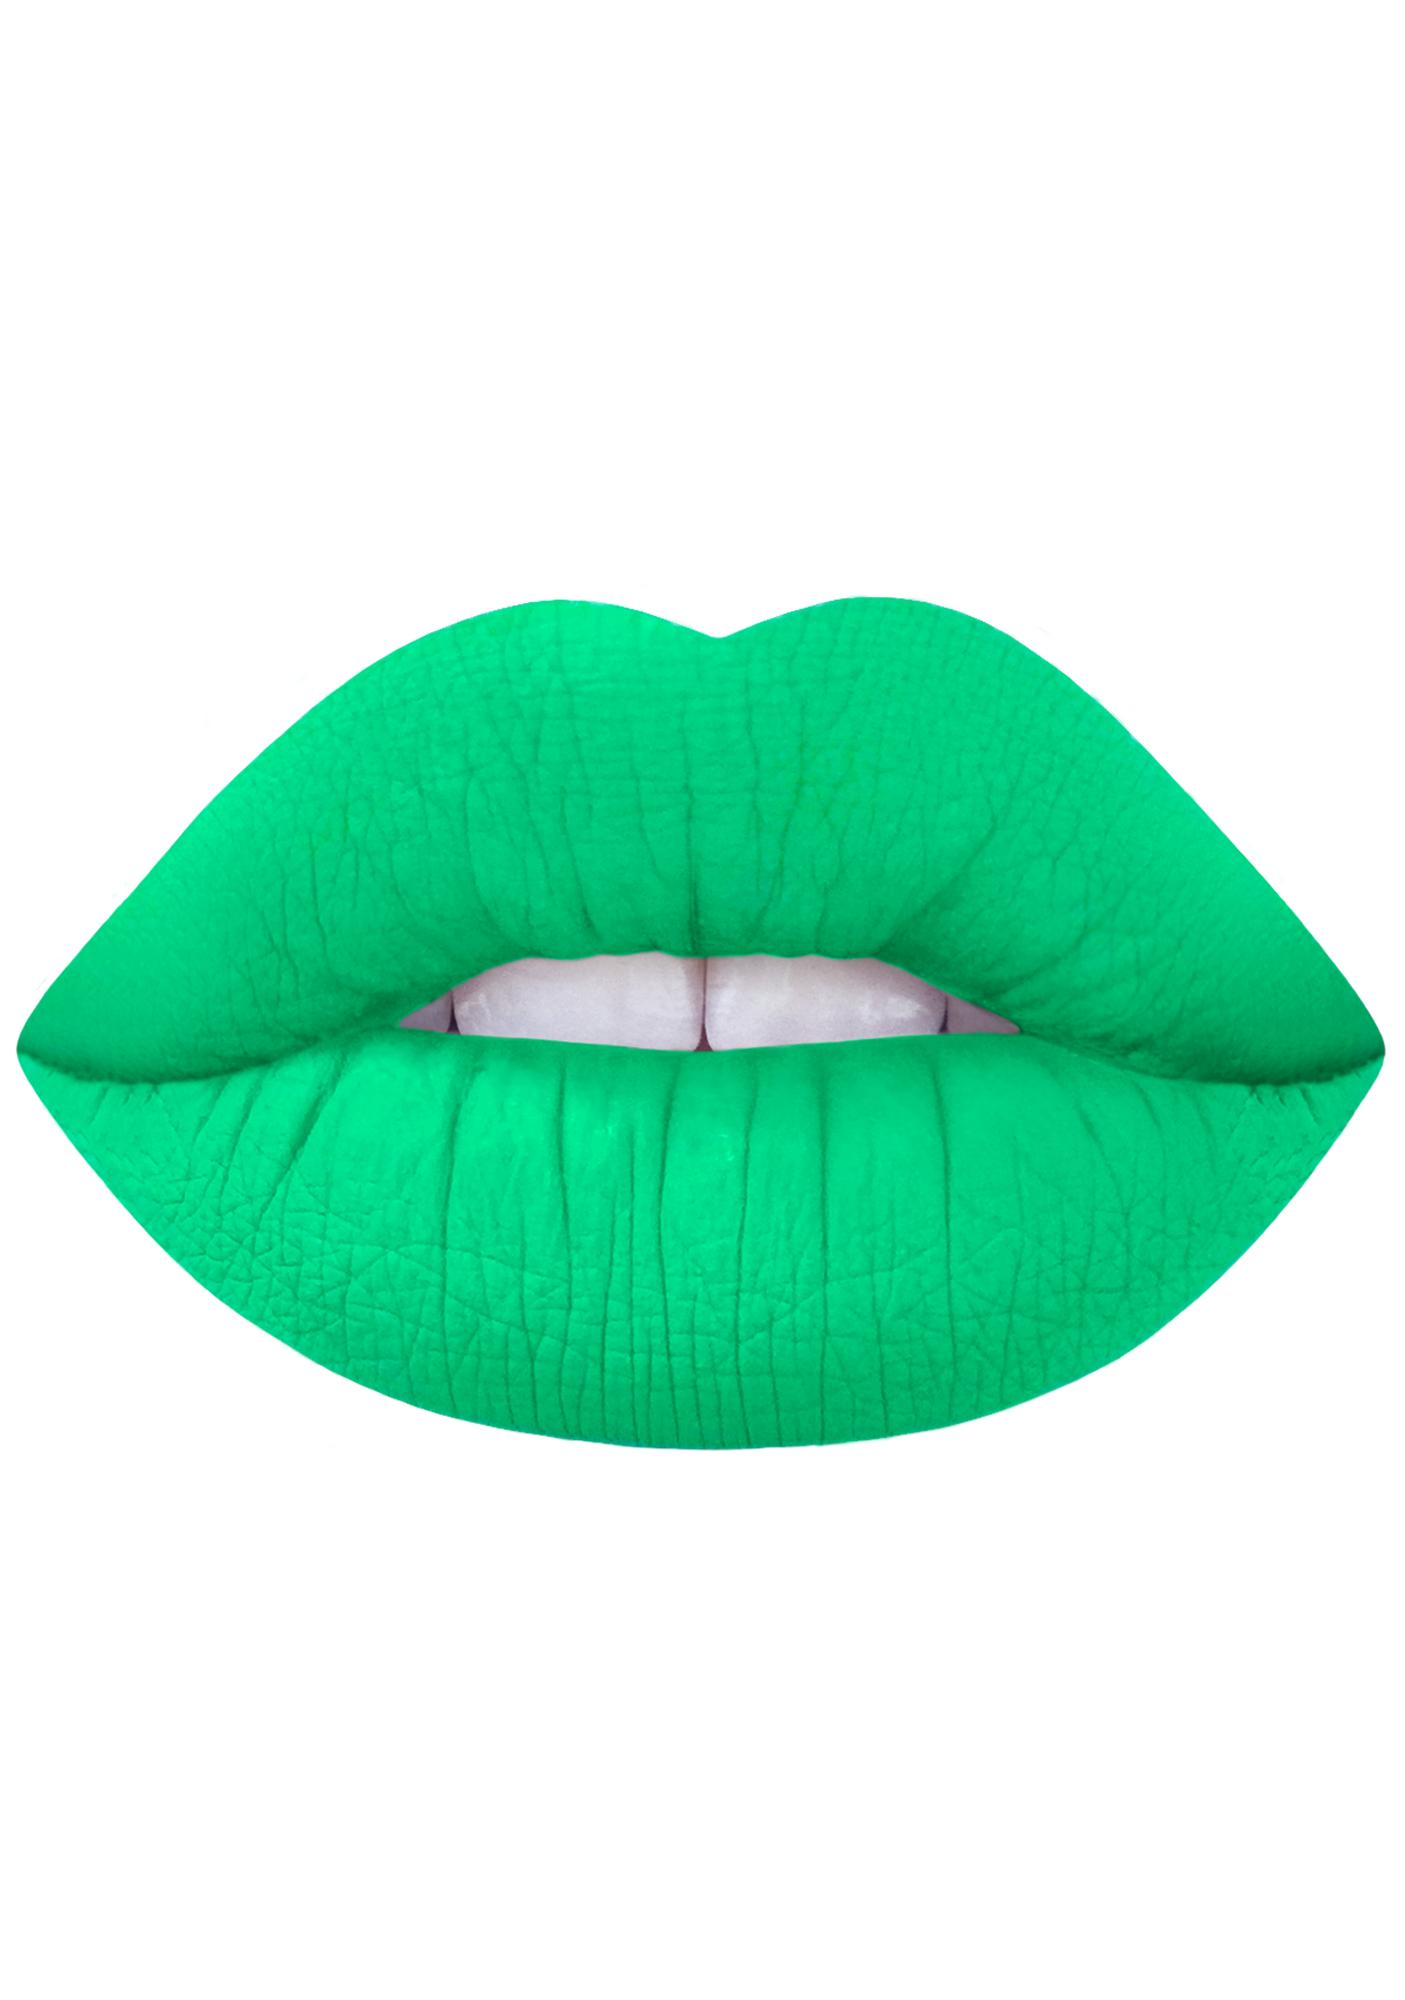 Lime Crime Alien Velvetine Liquid Lipstick